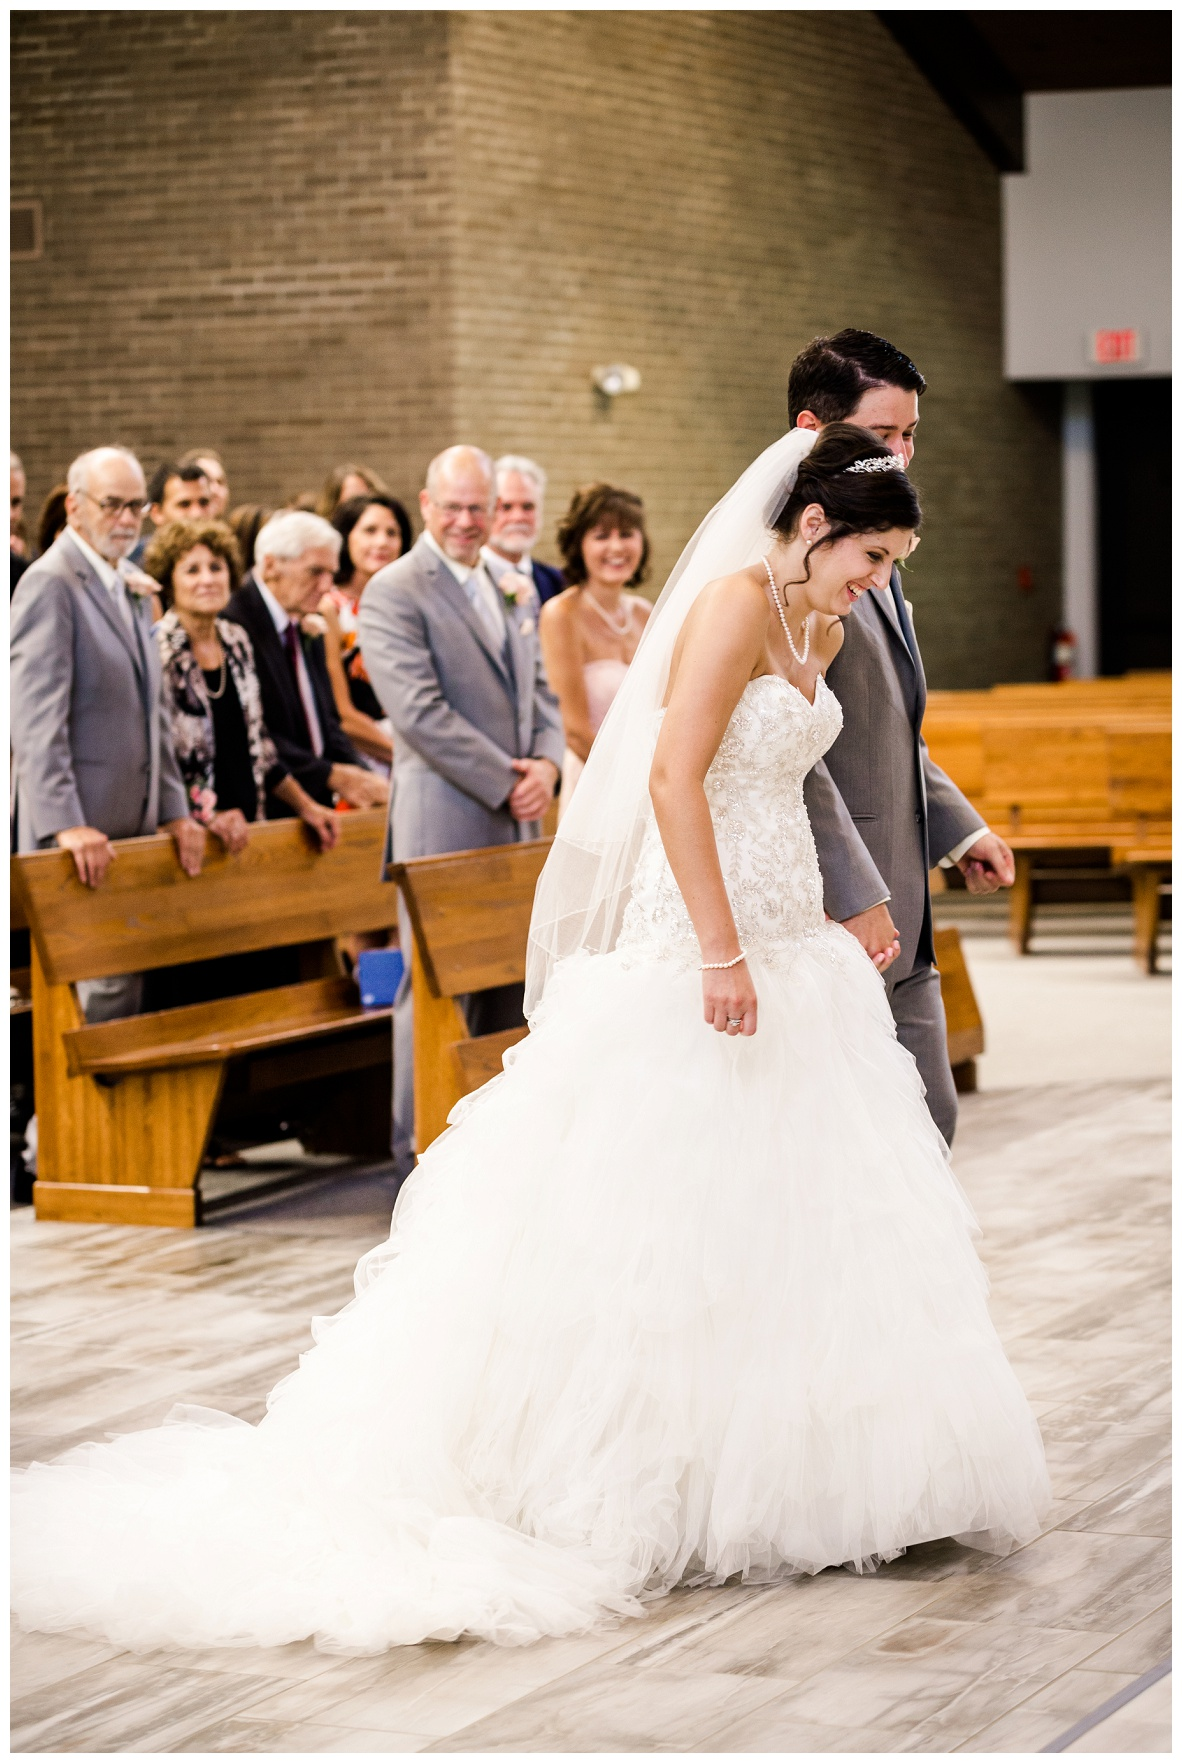 Mr. and Mrs. King_0029.jpg